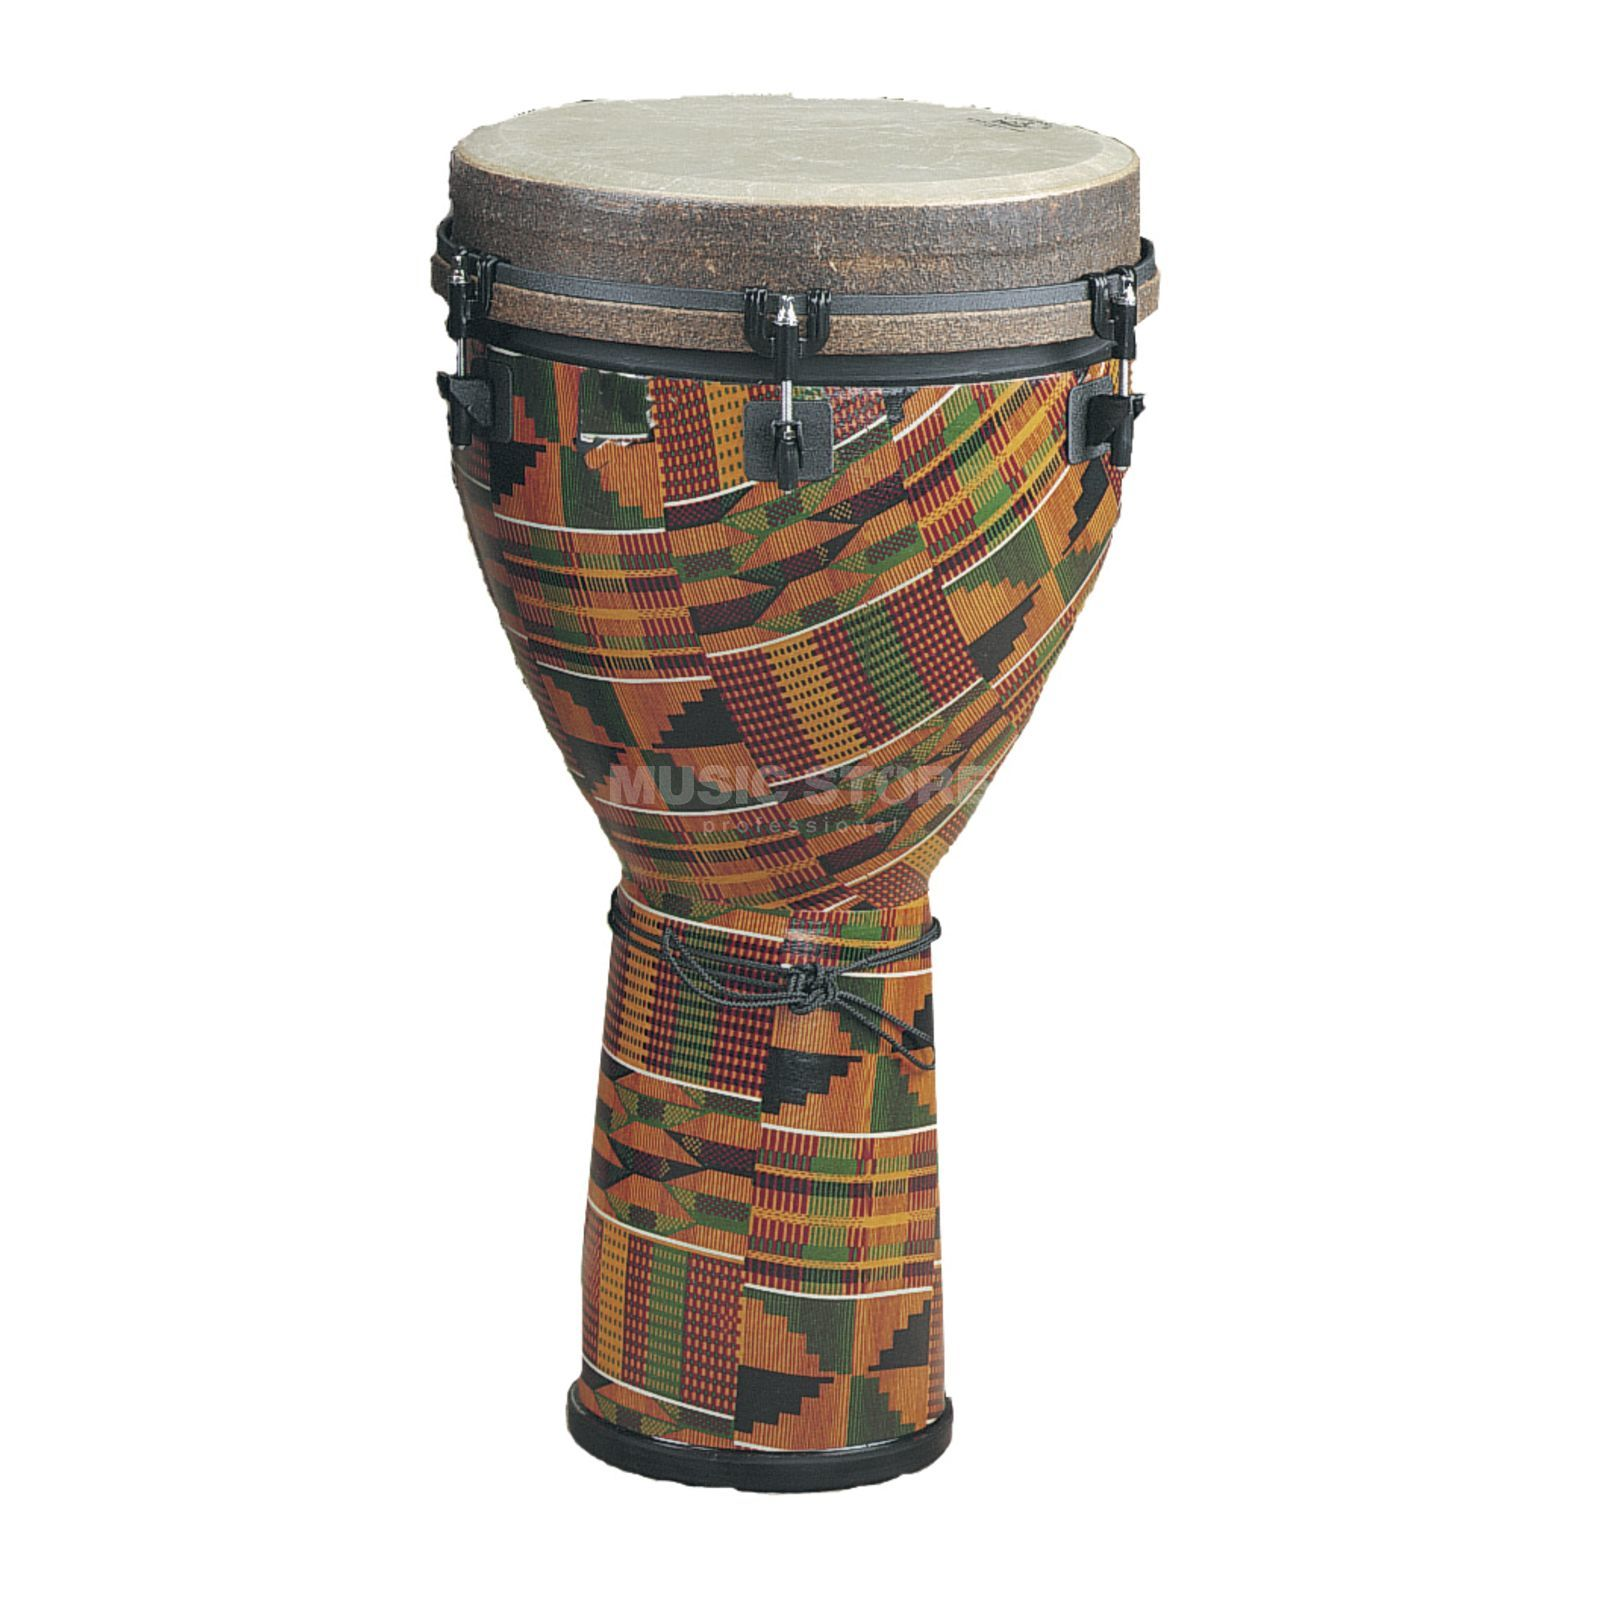 "Remo Djembe DJ-0012-PM 12""x24"", African Collection Produktbild"